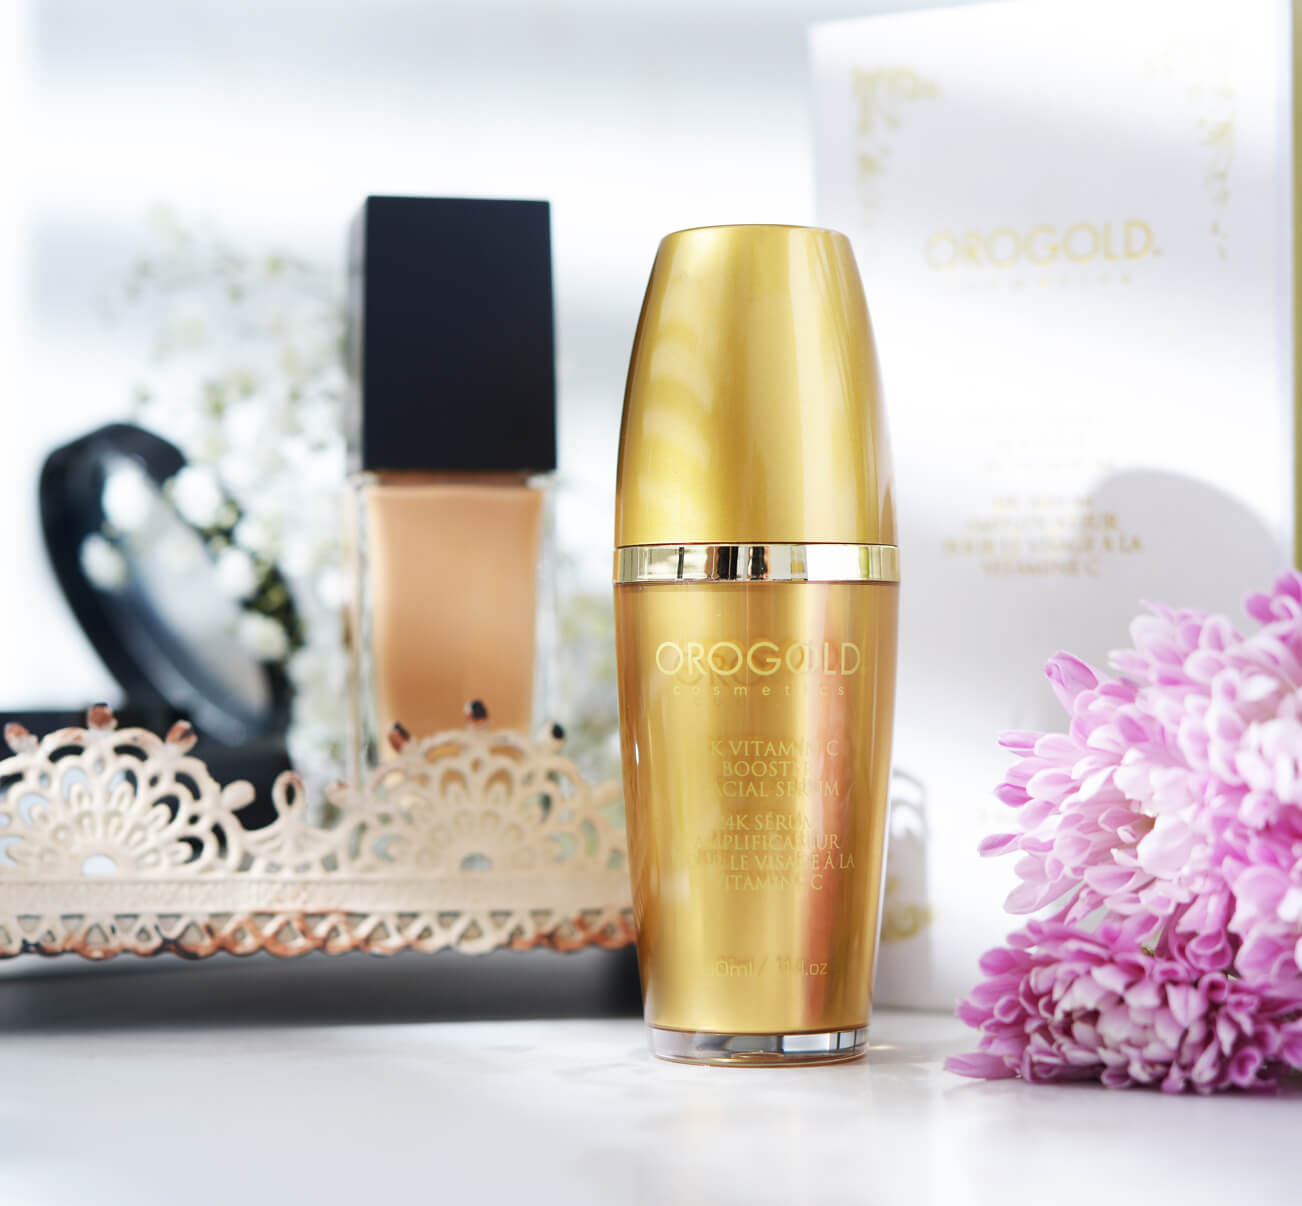 OROGOLD 24K Vitamin C Facial Booster Serum